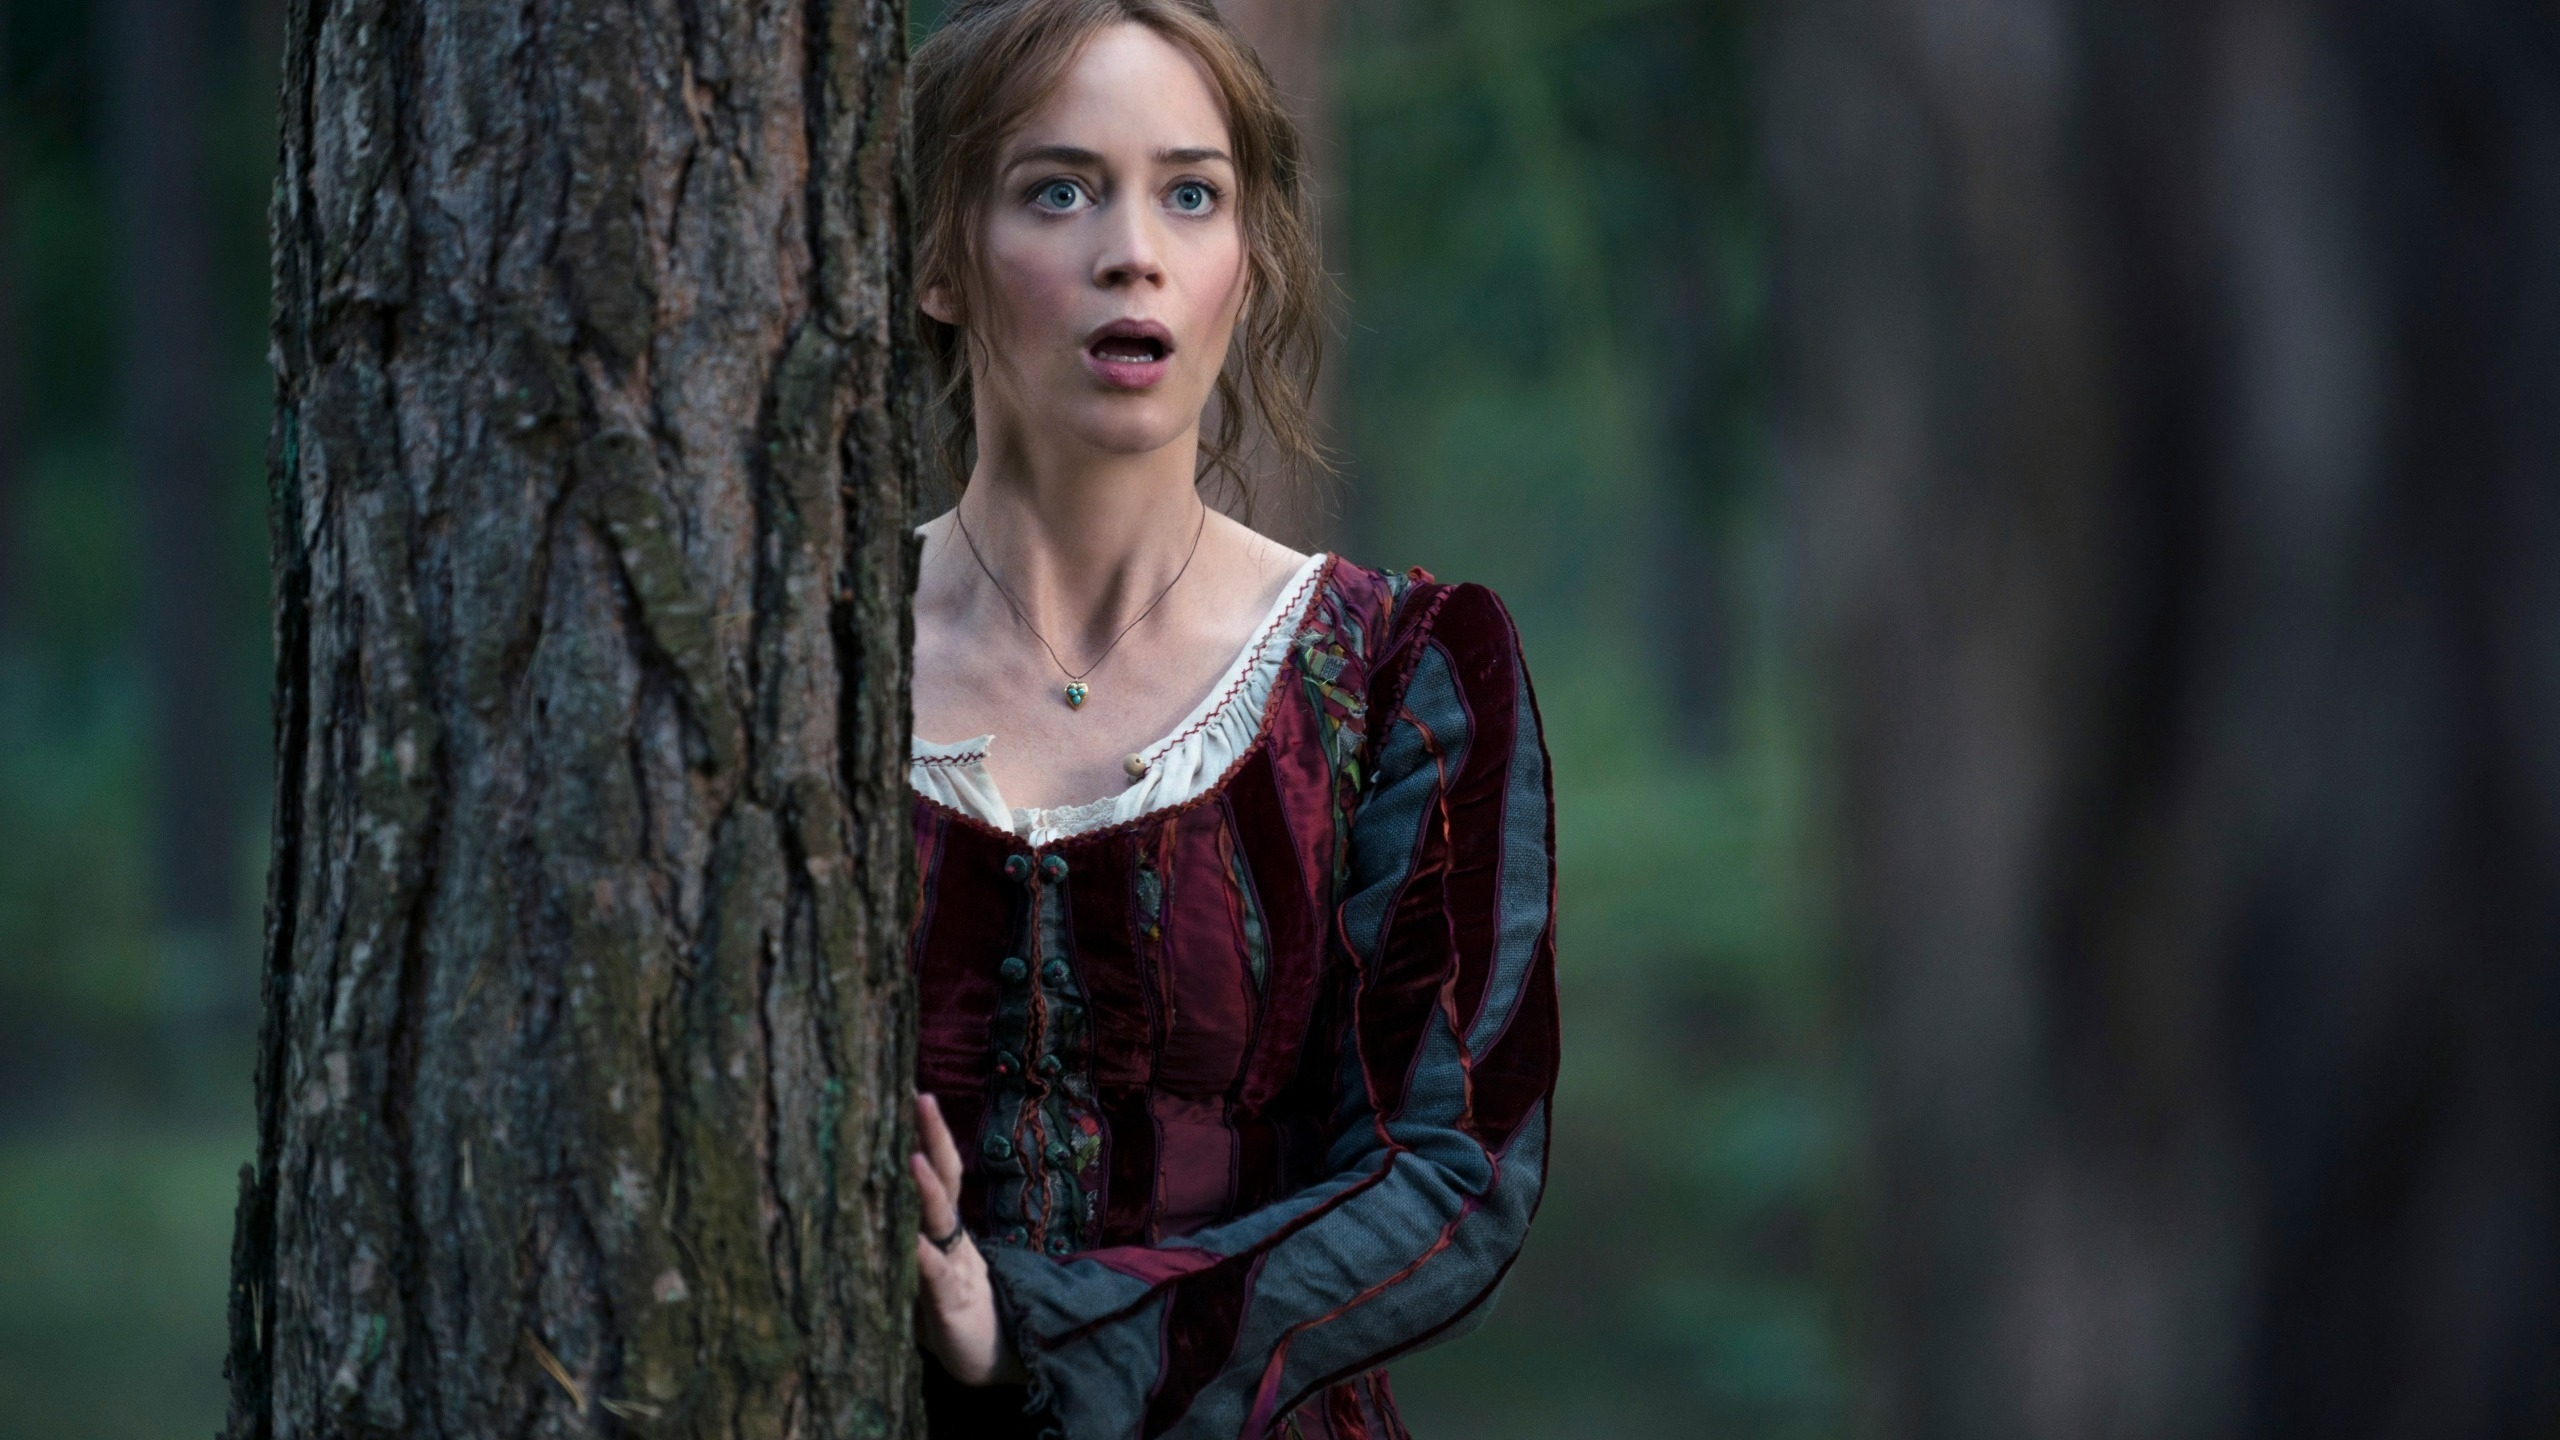 2560x1440 Into the Woods Emily Blunt YouTube Channel Cover Emily Blunt